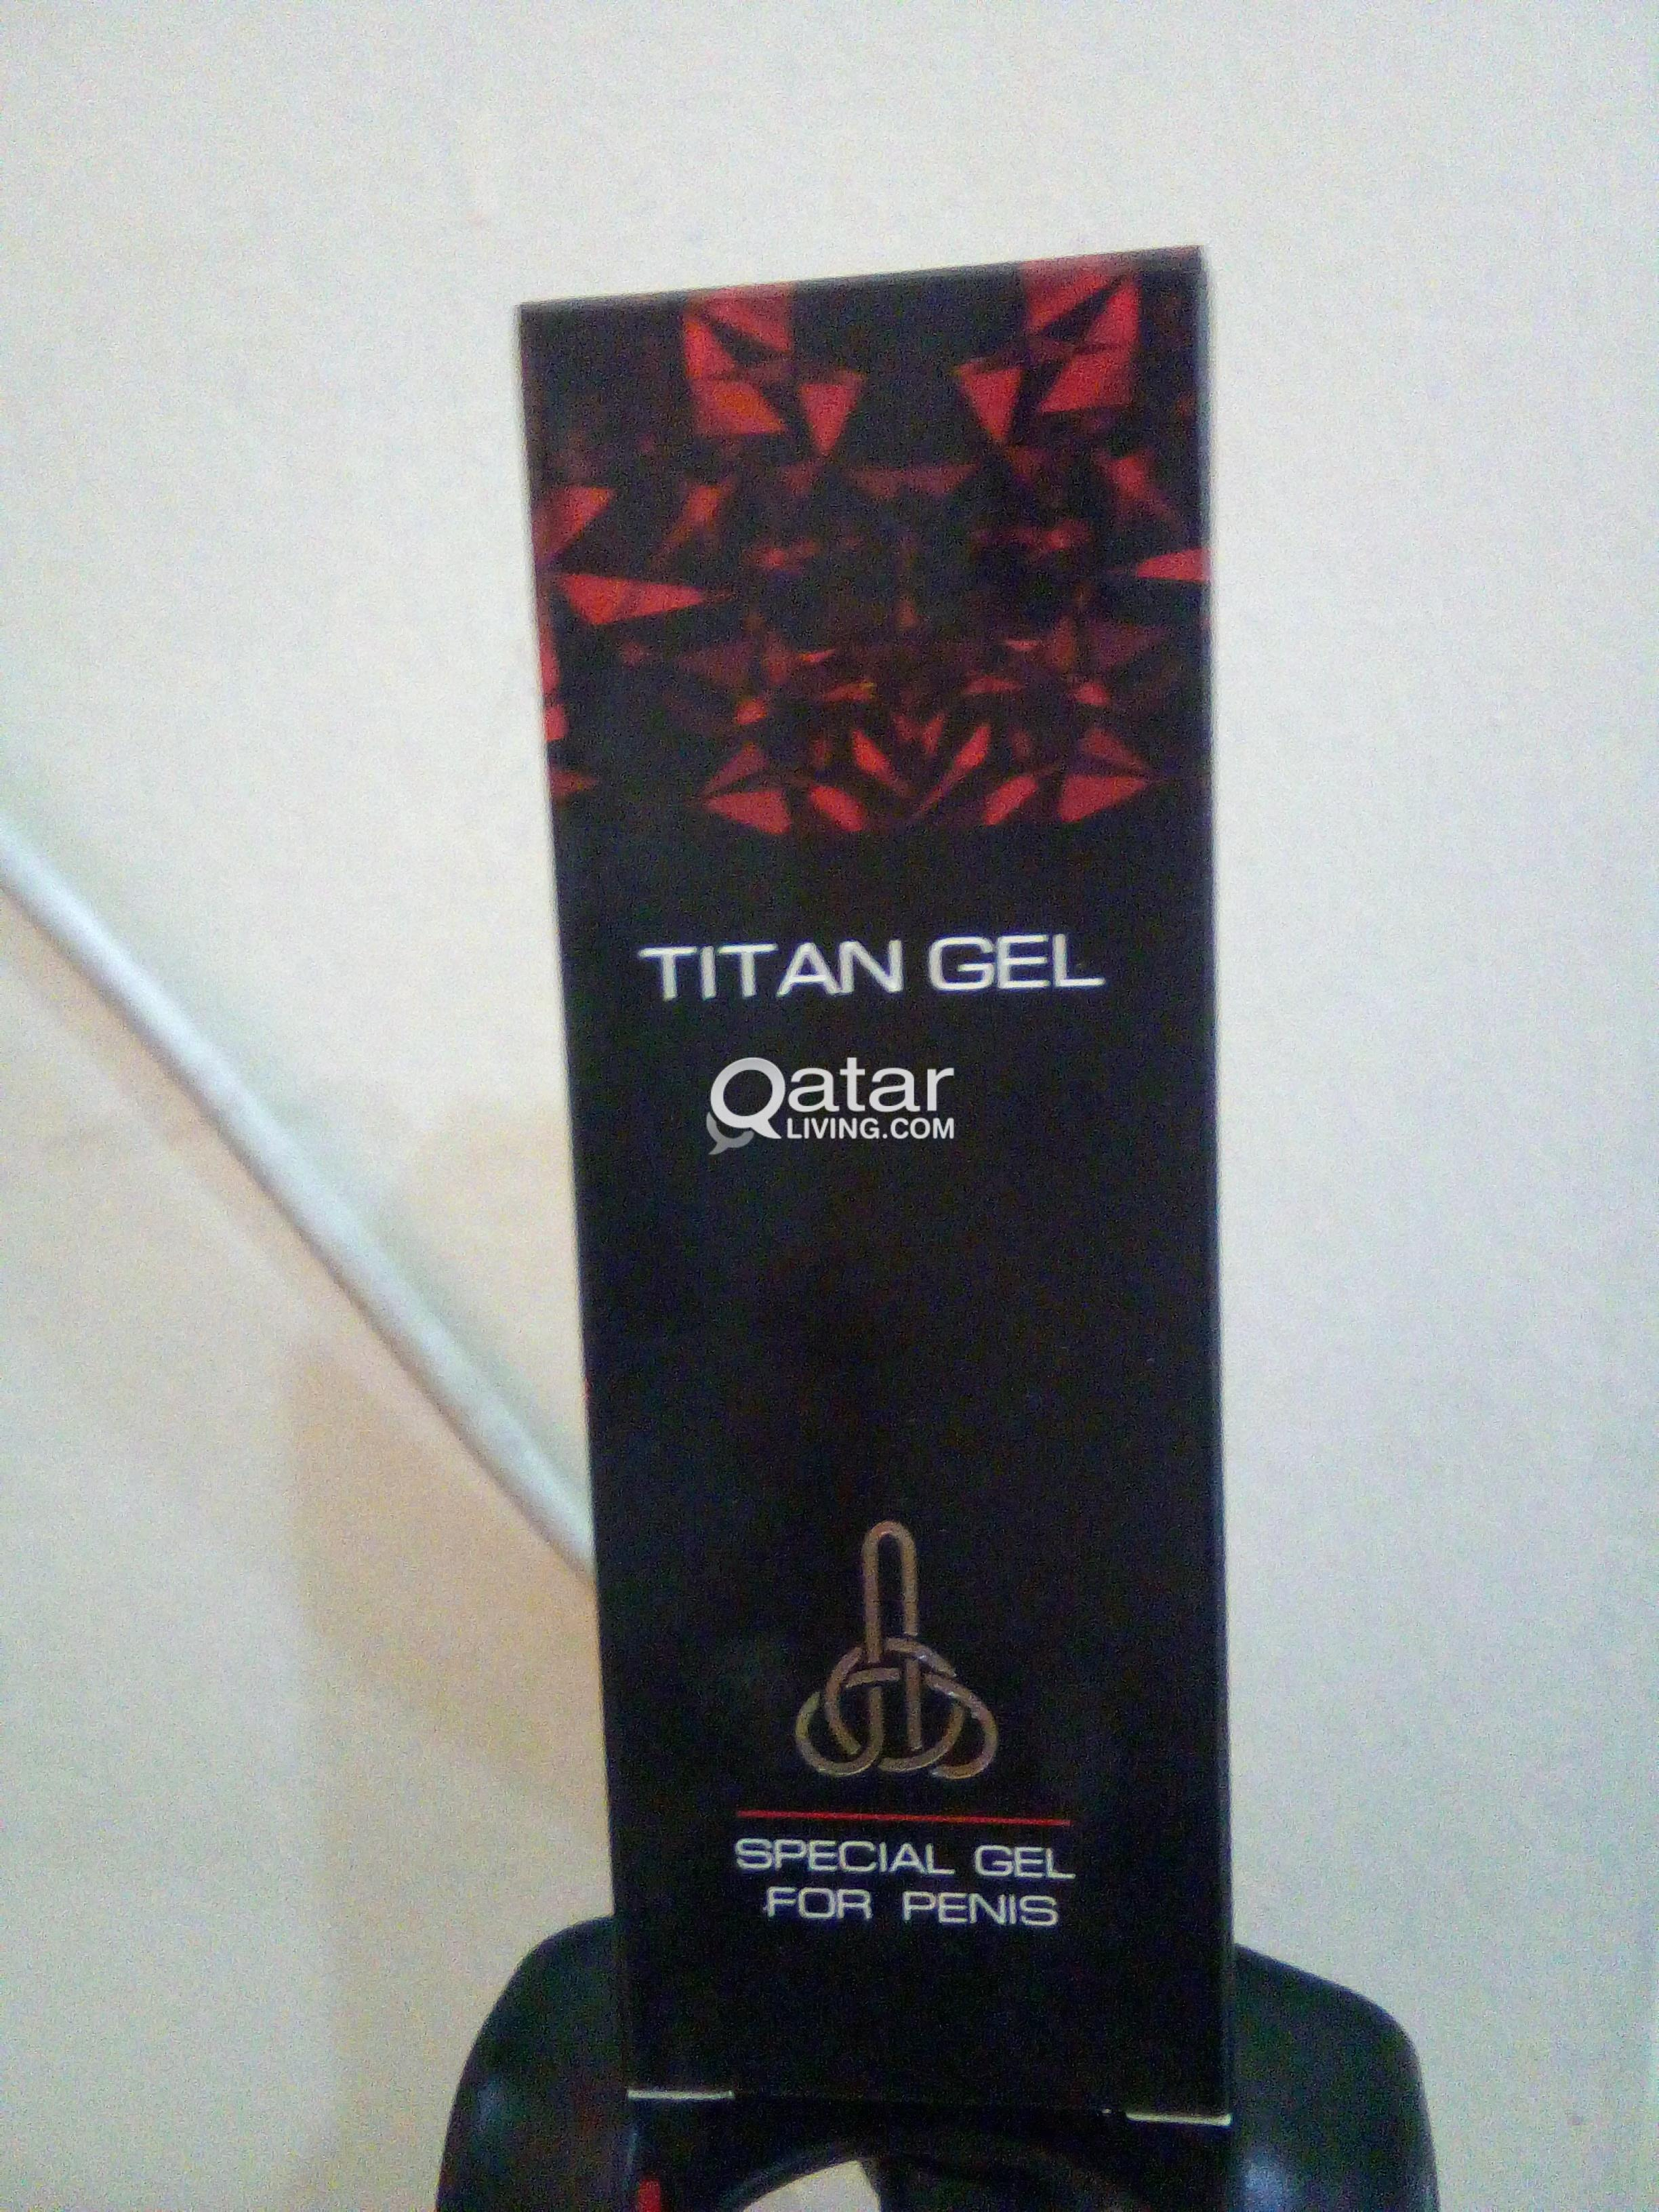 Titan Gel Now In Qatar For Men S Penis Enlargement Qatar Living